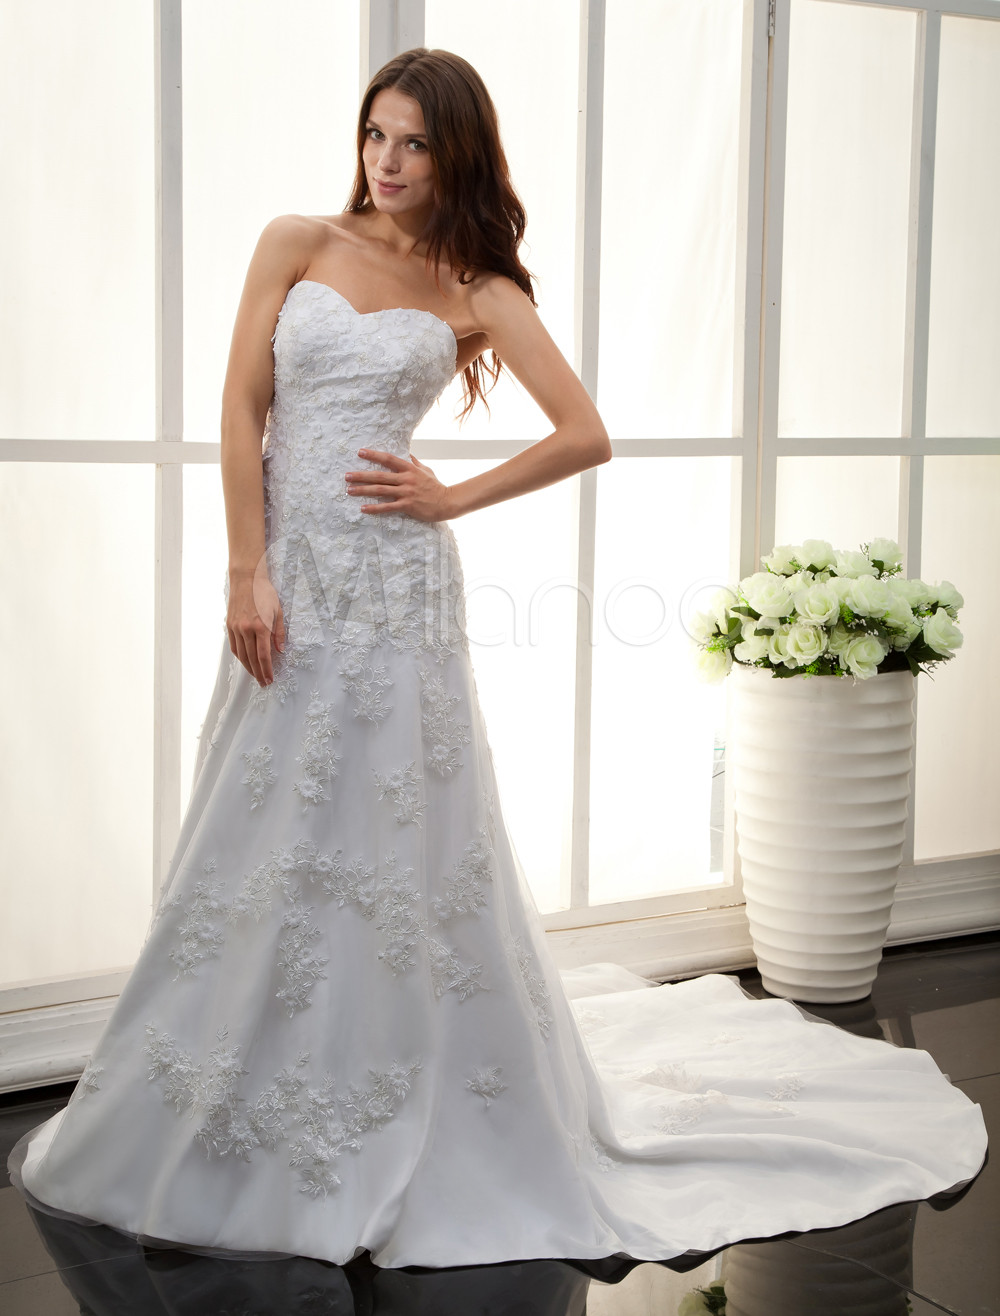 White Sweetheart Lace Applique Bridal Wedding Dress